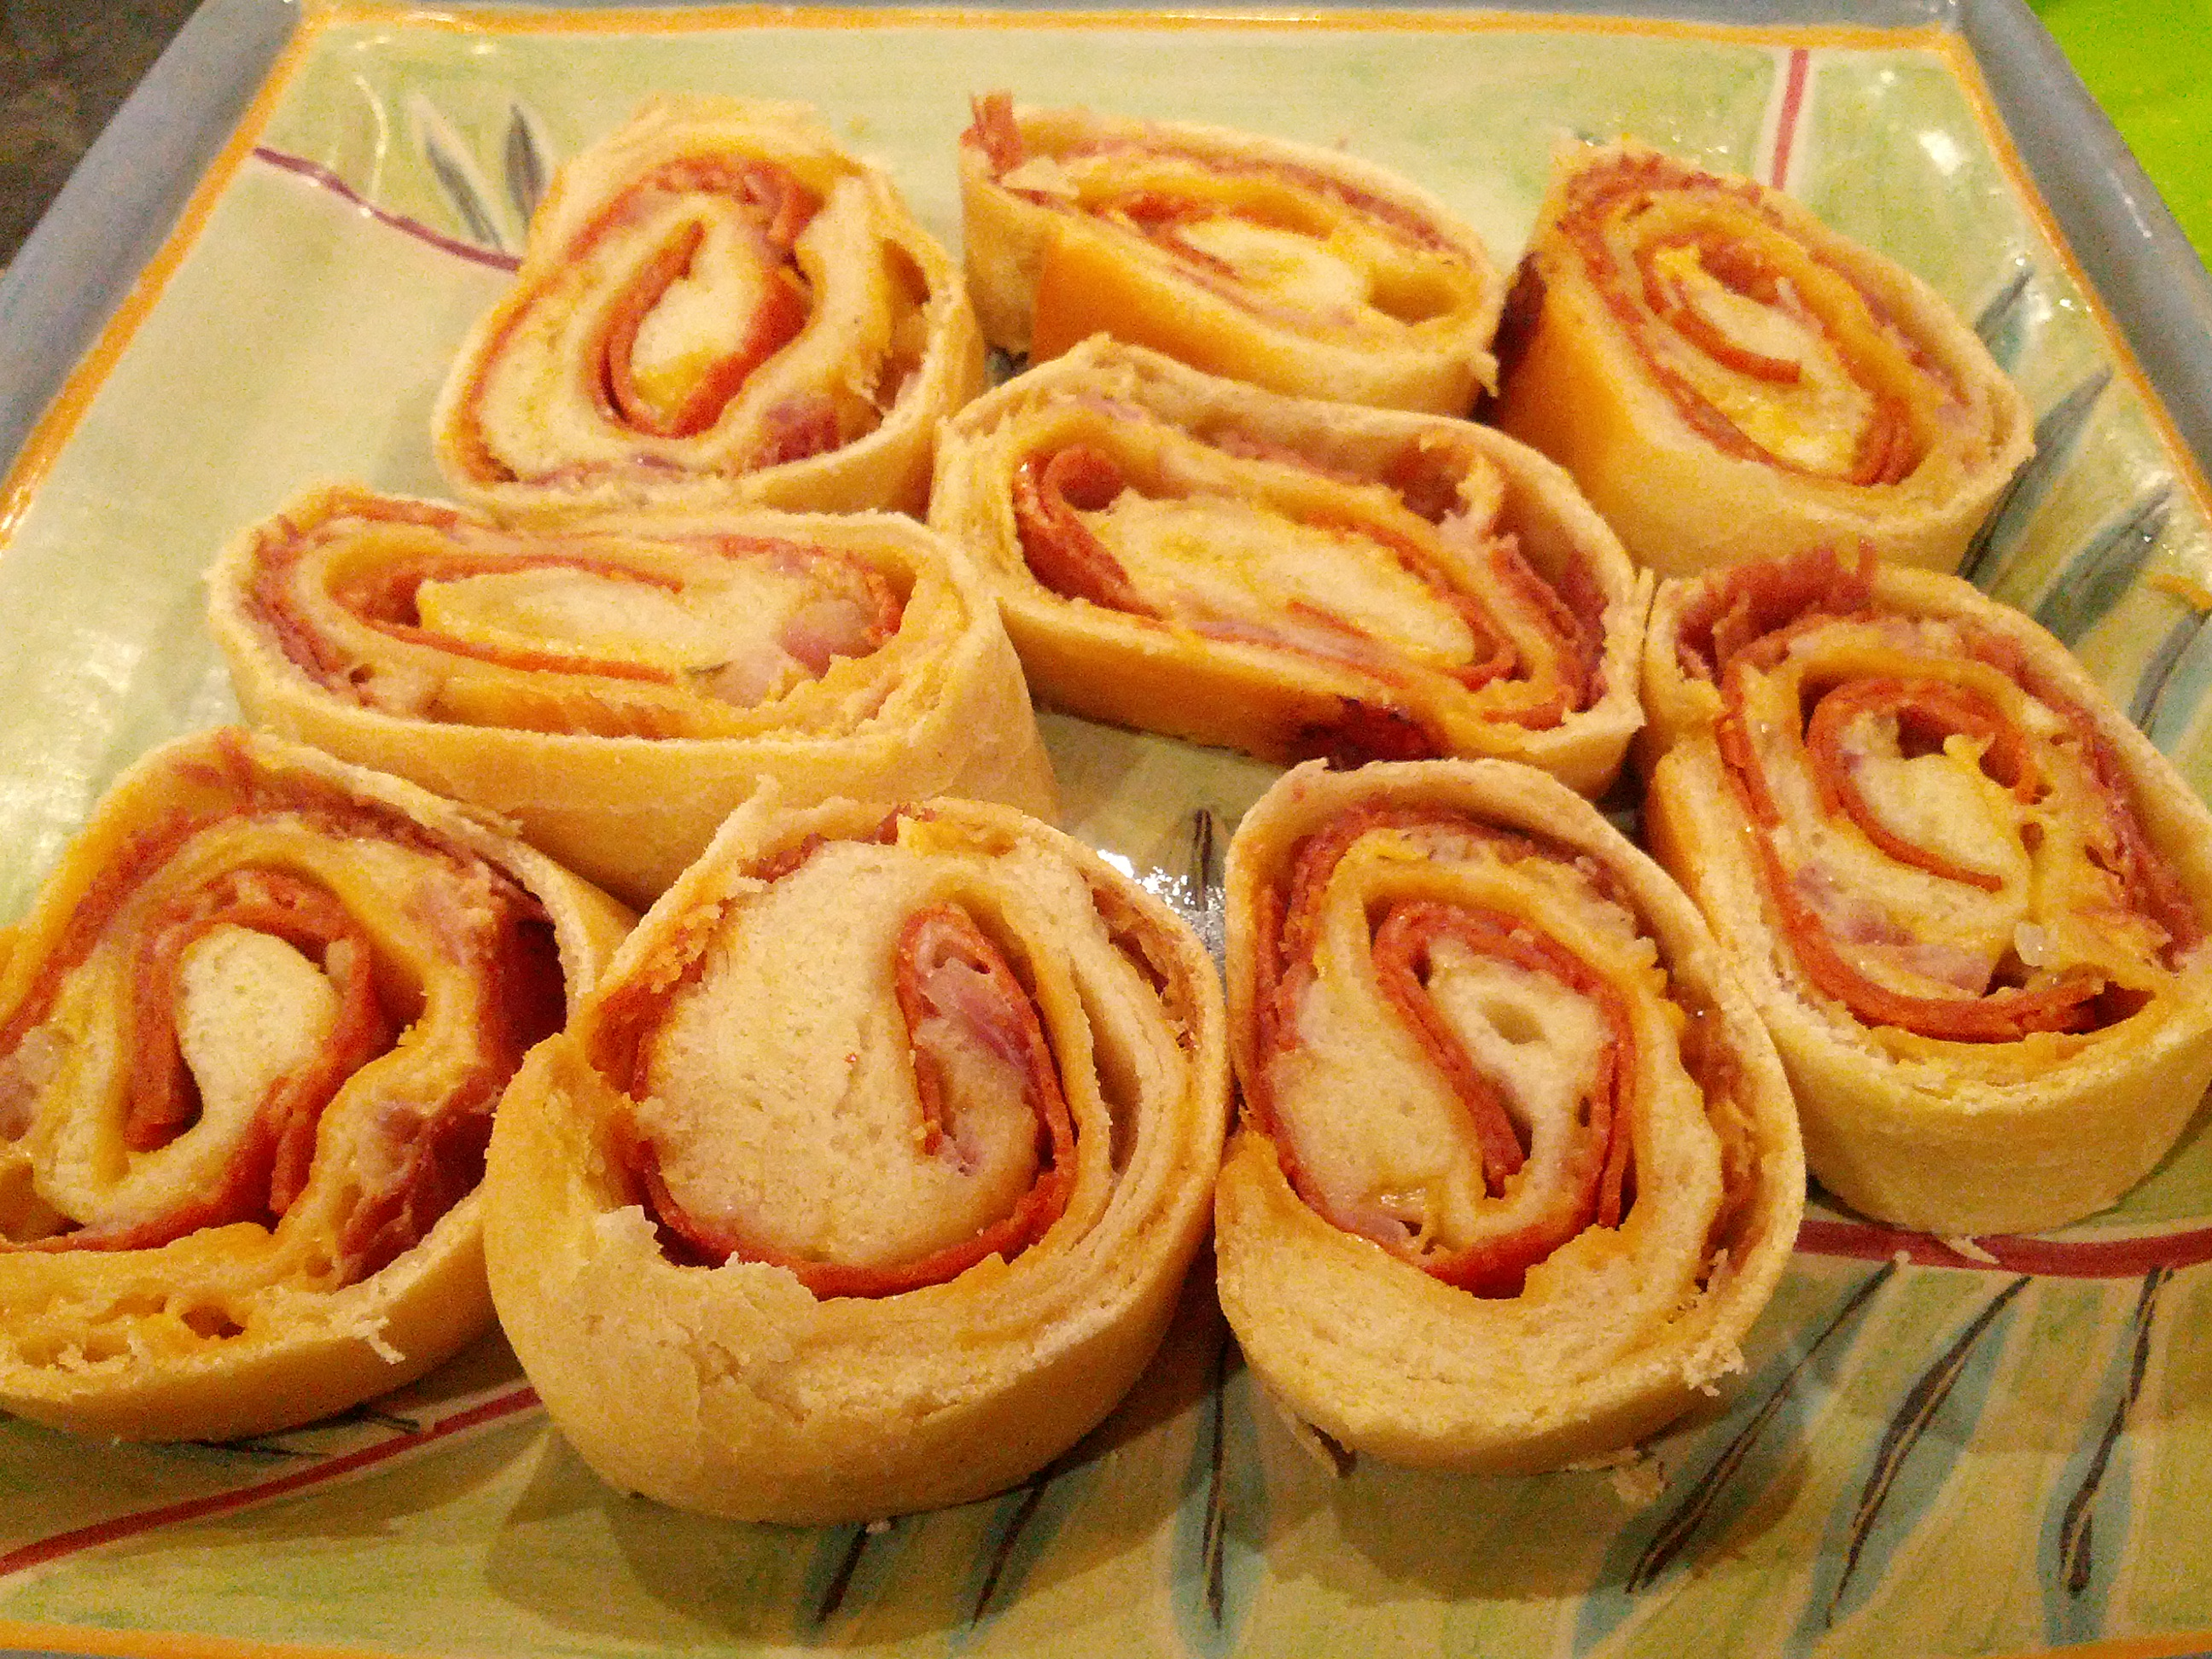 ... stuffed bread ready in 45 minutes pepperoni stuffed bread 1